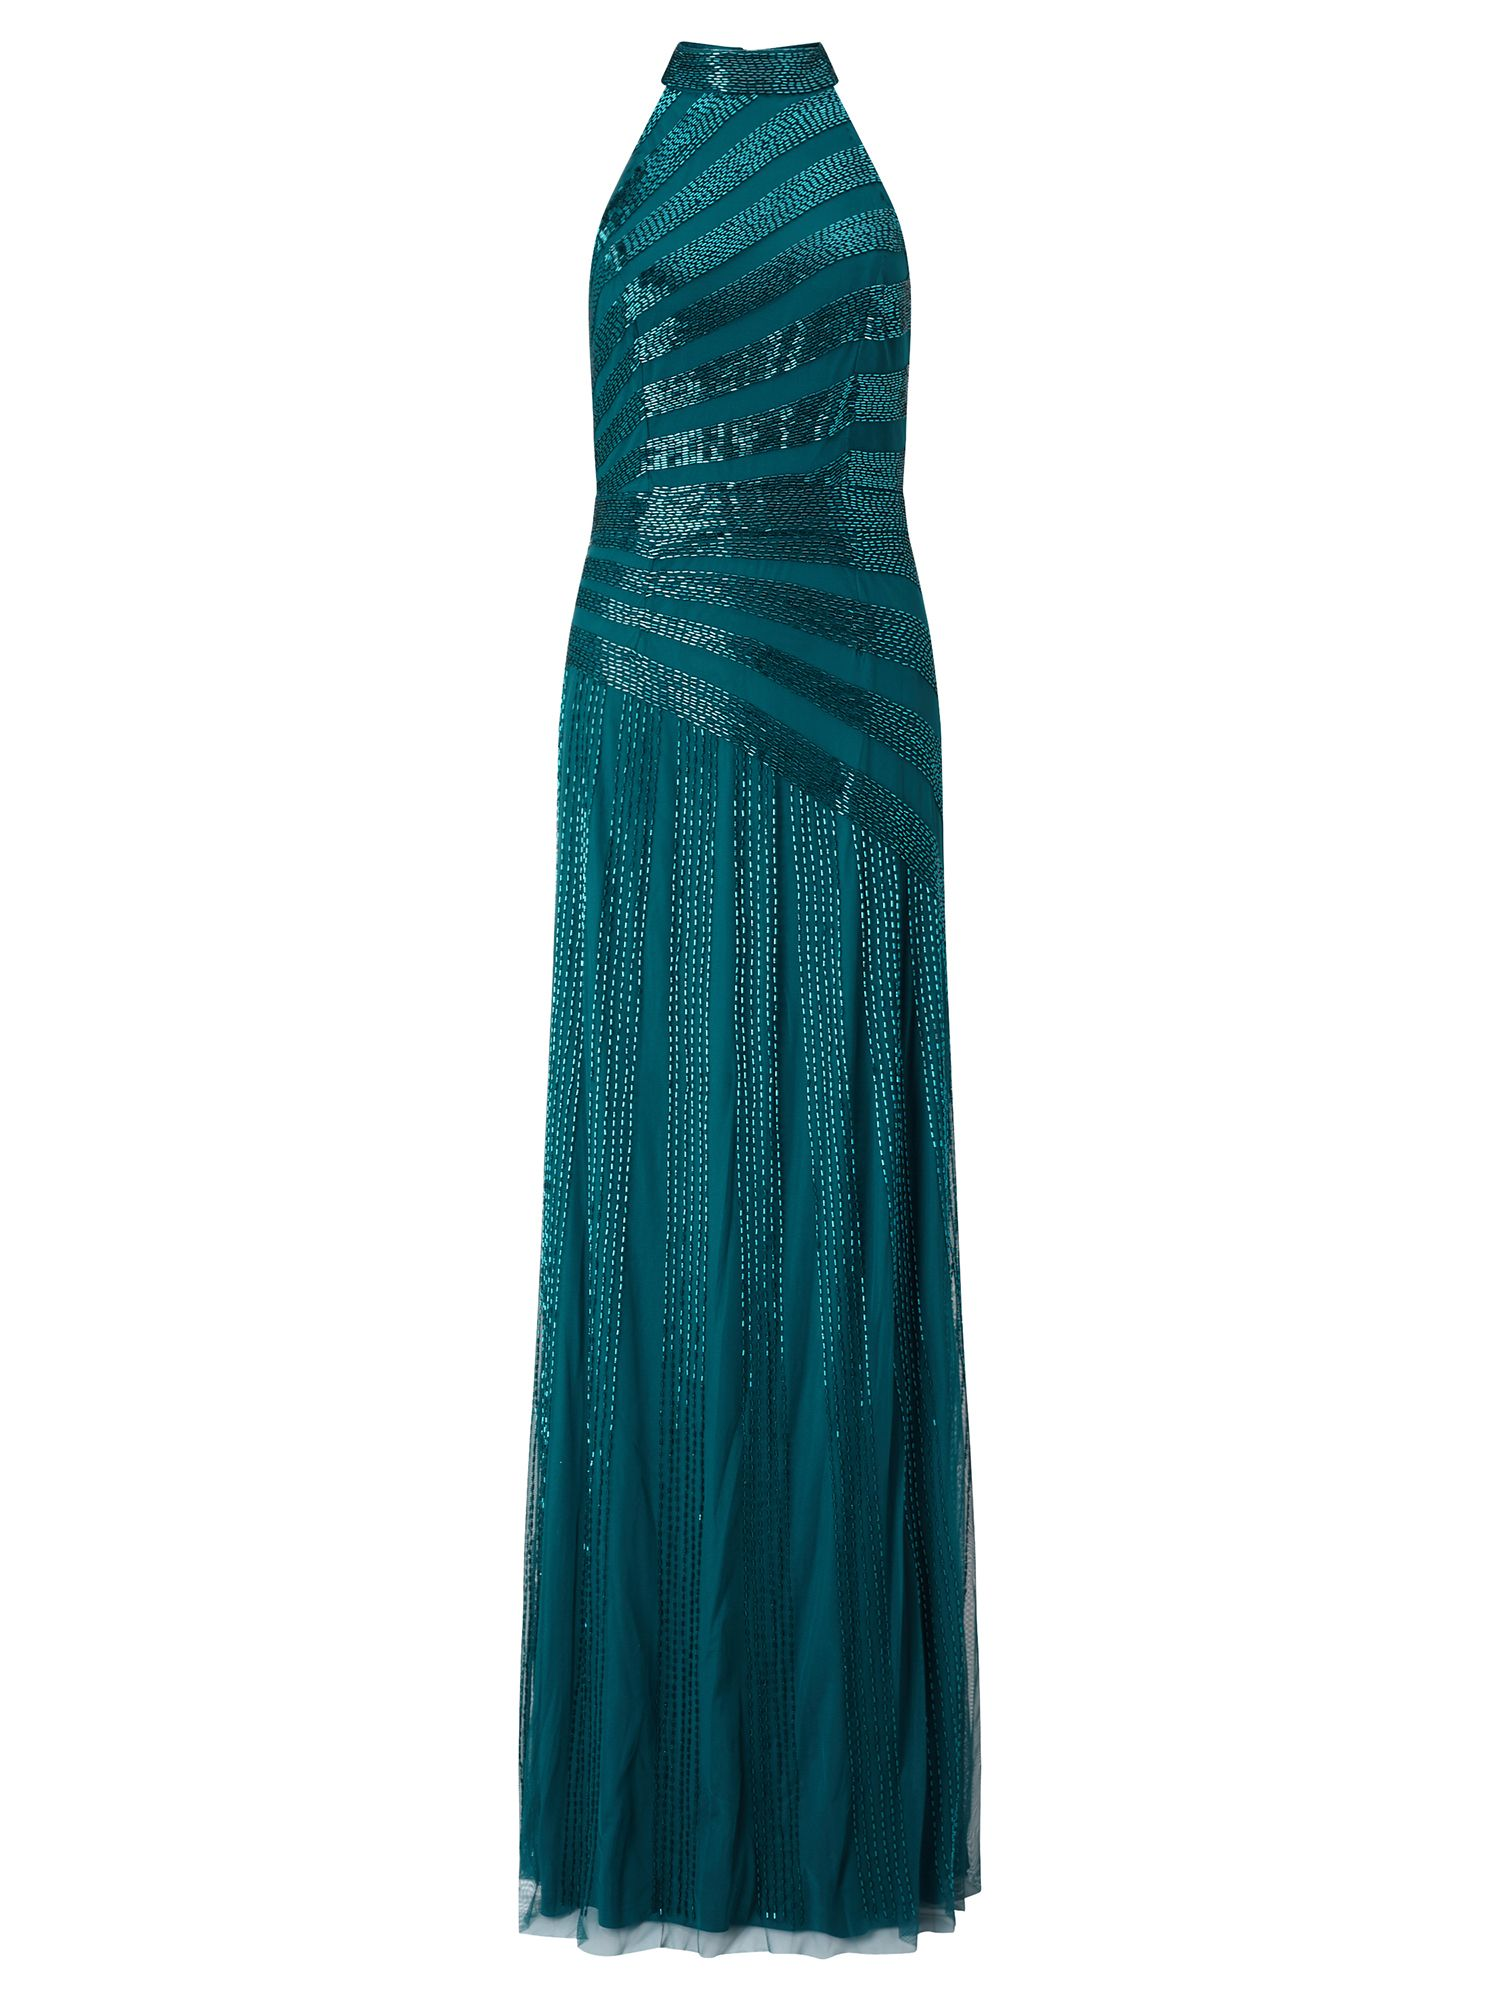 Adrianna Papell Beaded Evening Gown, Green